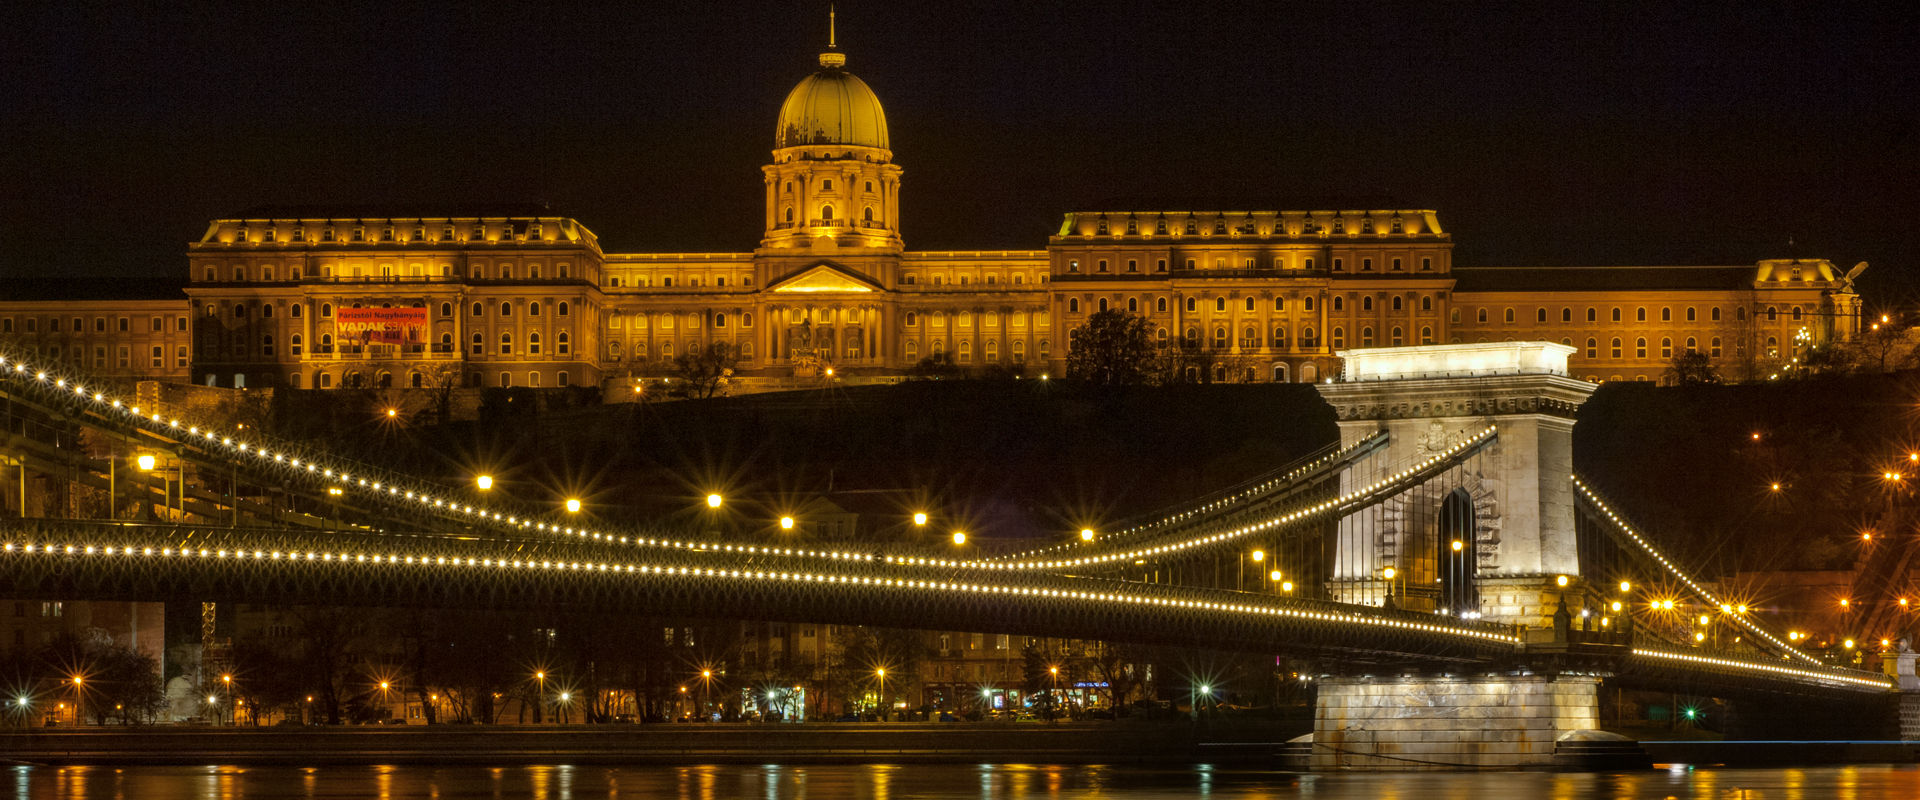 The Grantourismo Travels Guide to Budapest, Hungary. Copyright © 2017 Terence Carter / Grantourismo. All Rights Reserved.